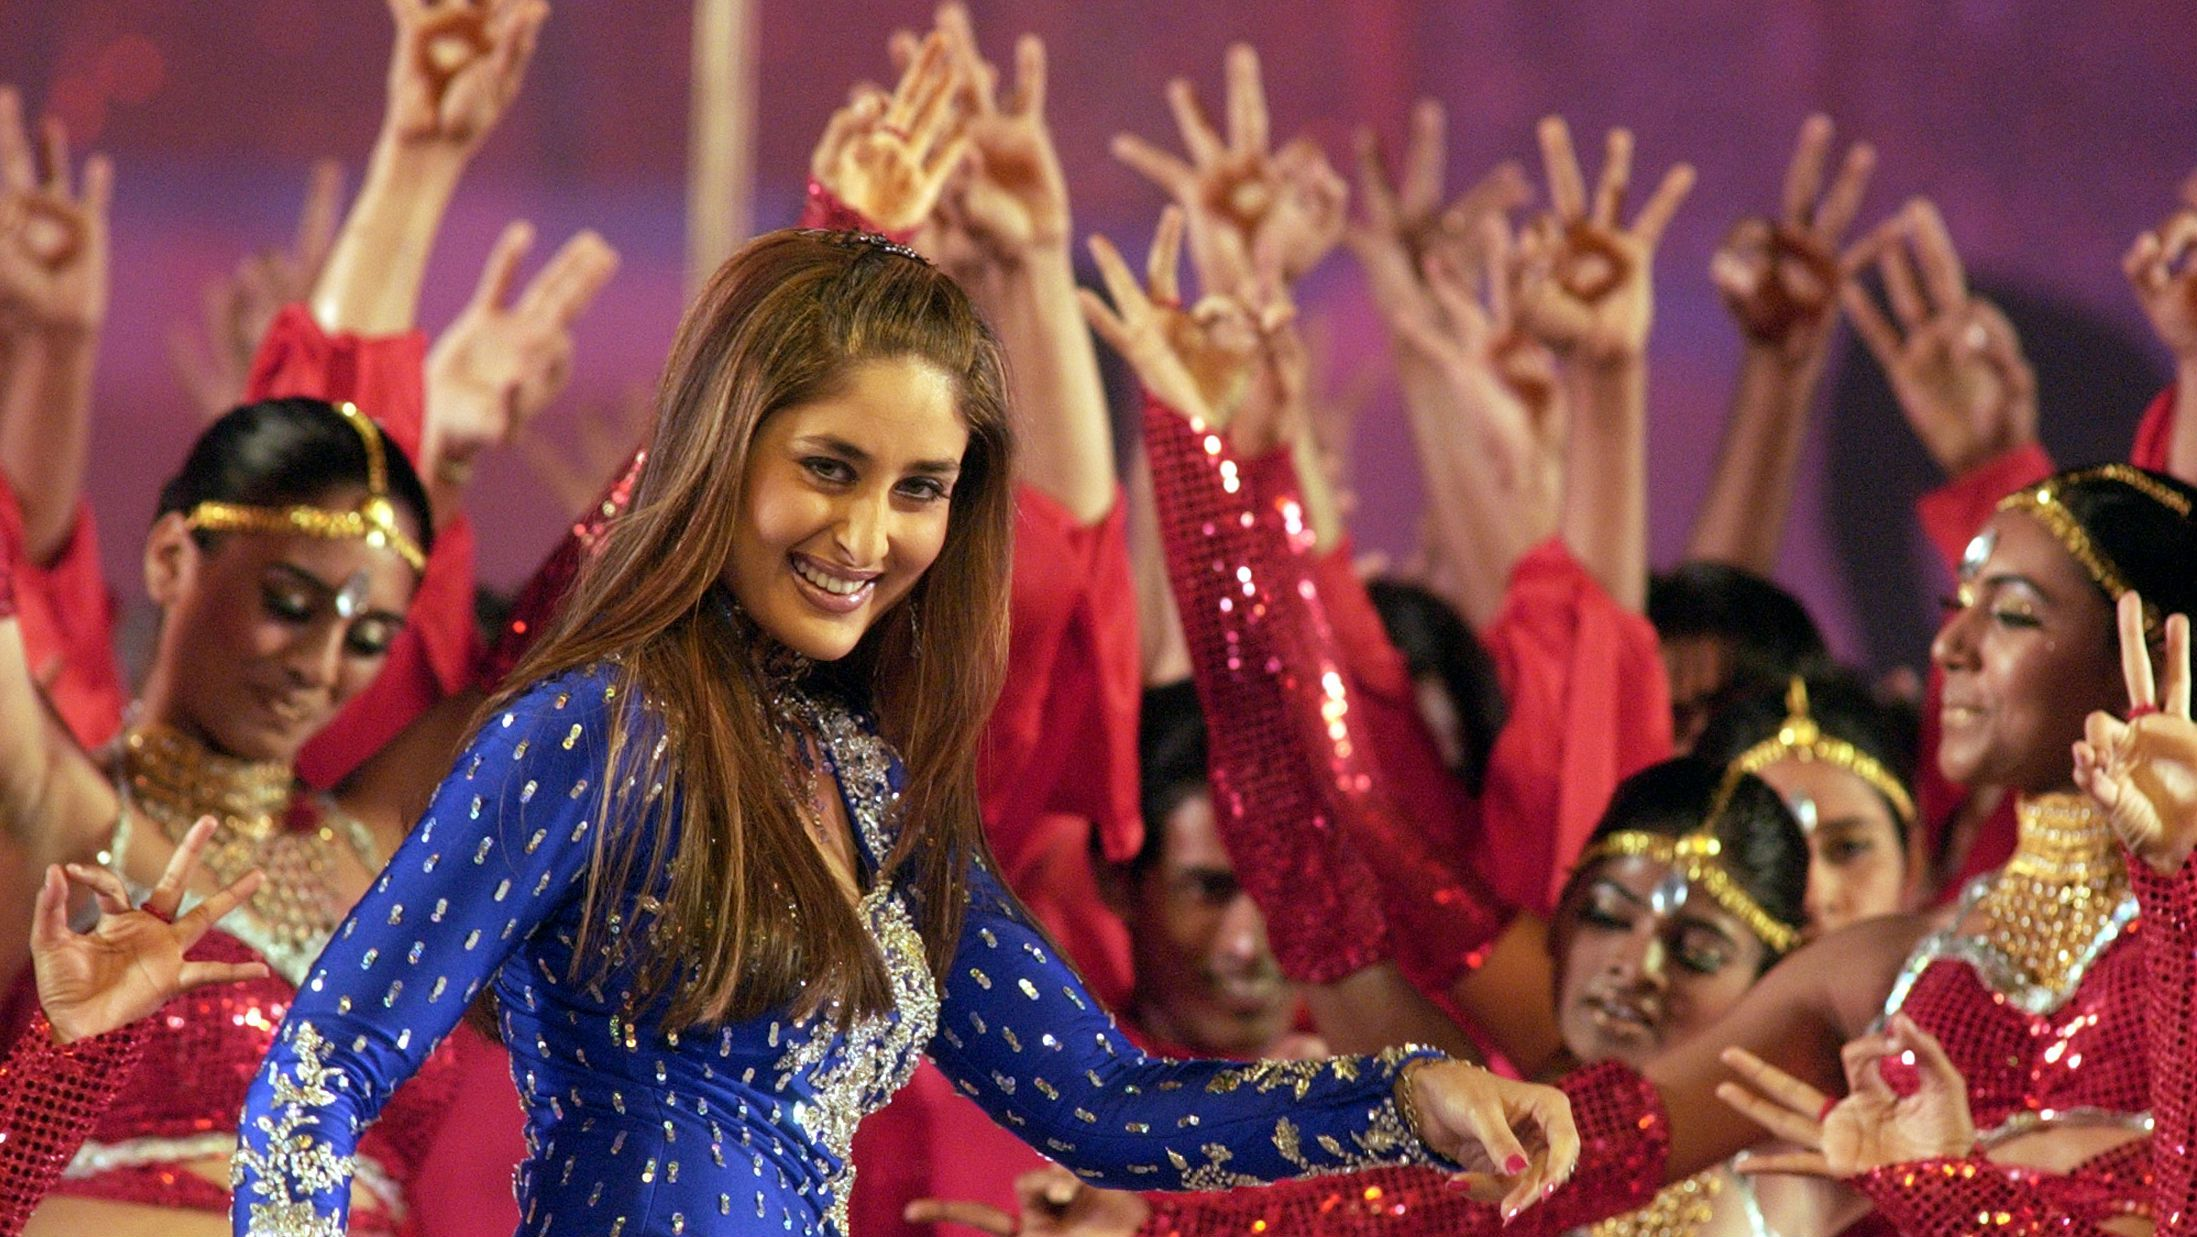 Bollywood star Kareena Kapoor performs during the Filmfare Indian movie awards, in Bombay February 21, 2004. REUTERS/Stringer SC/TW